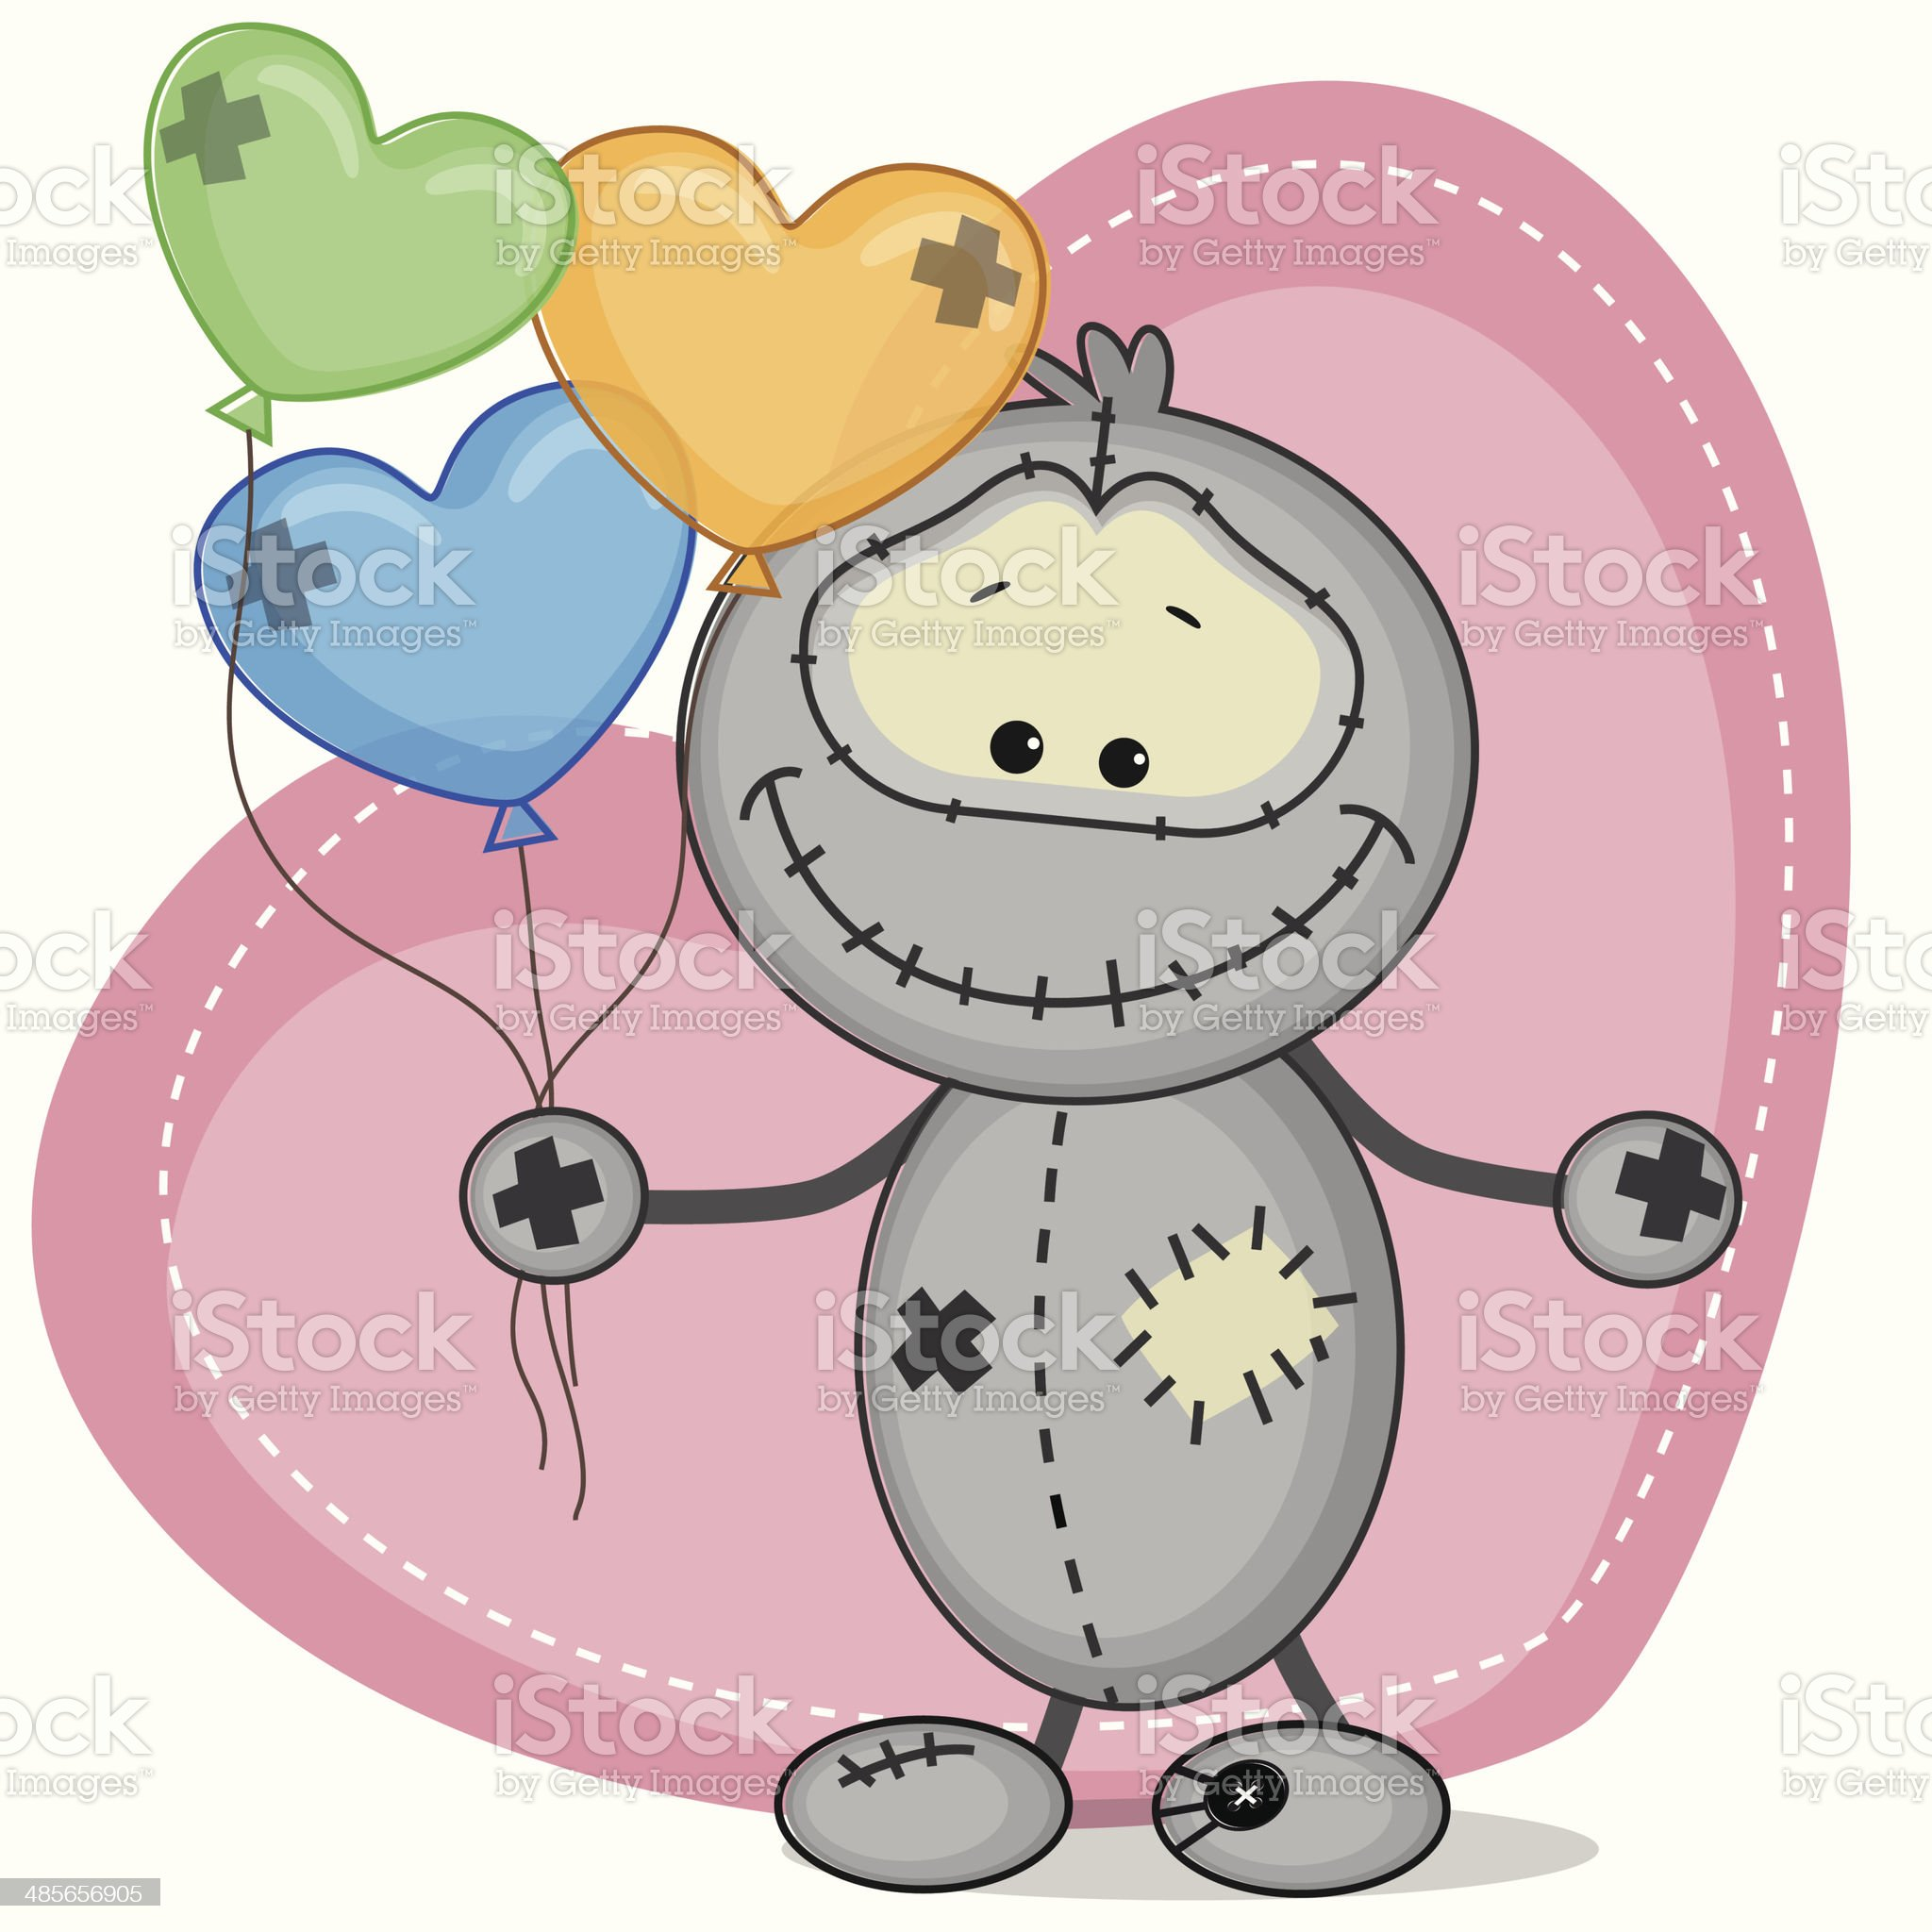 Monster with a balloons royalty-free stock vector art